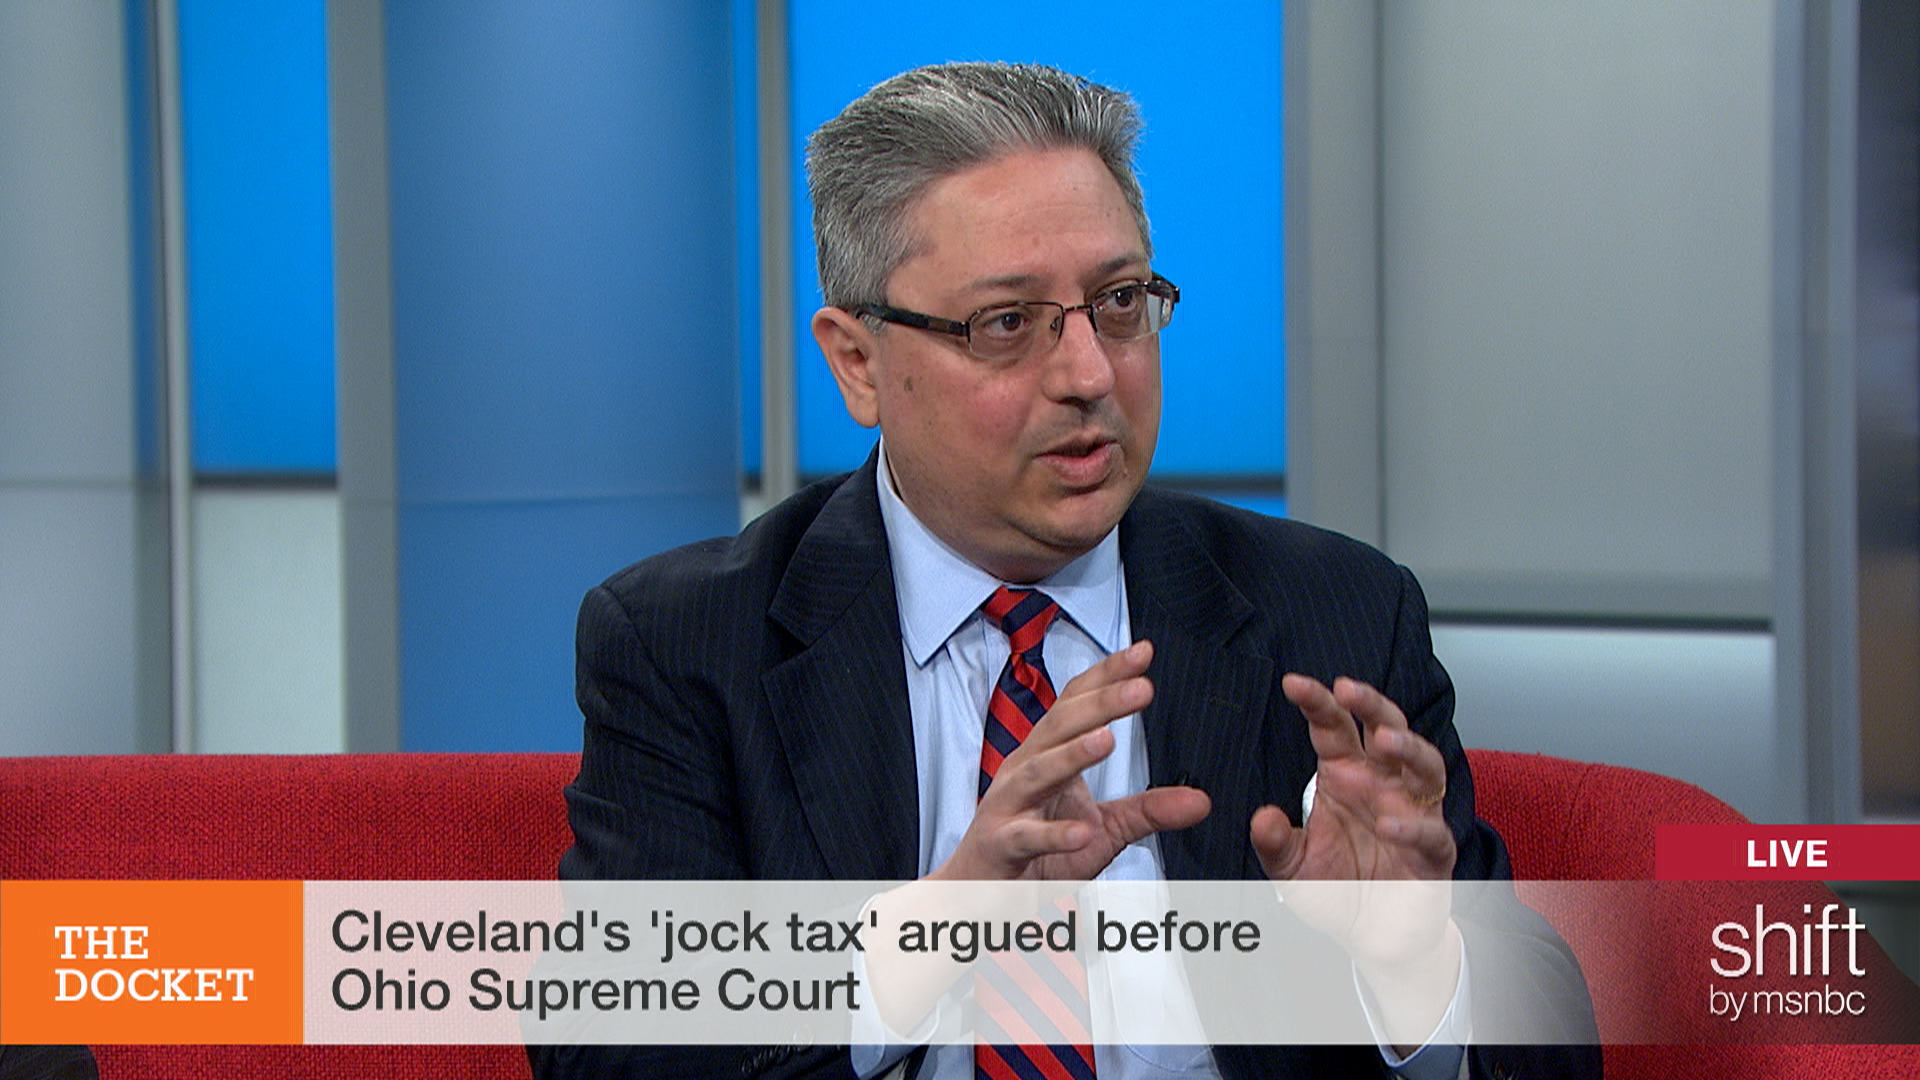 Is the 'jock tax' constitutional?